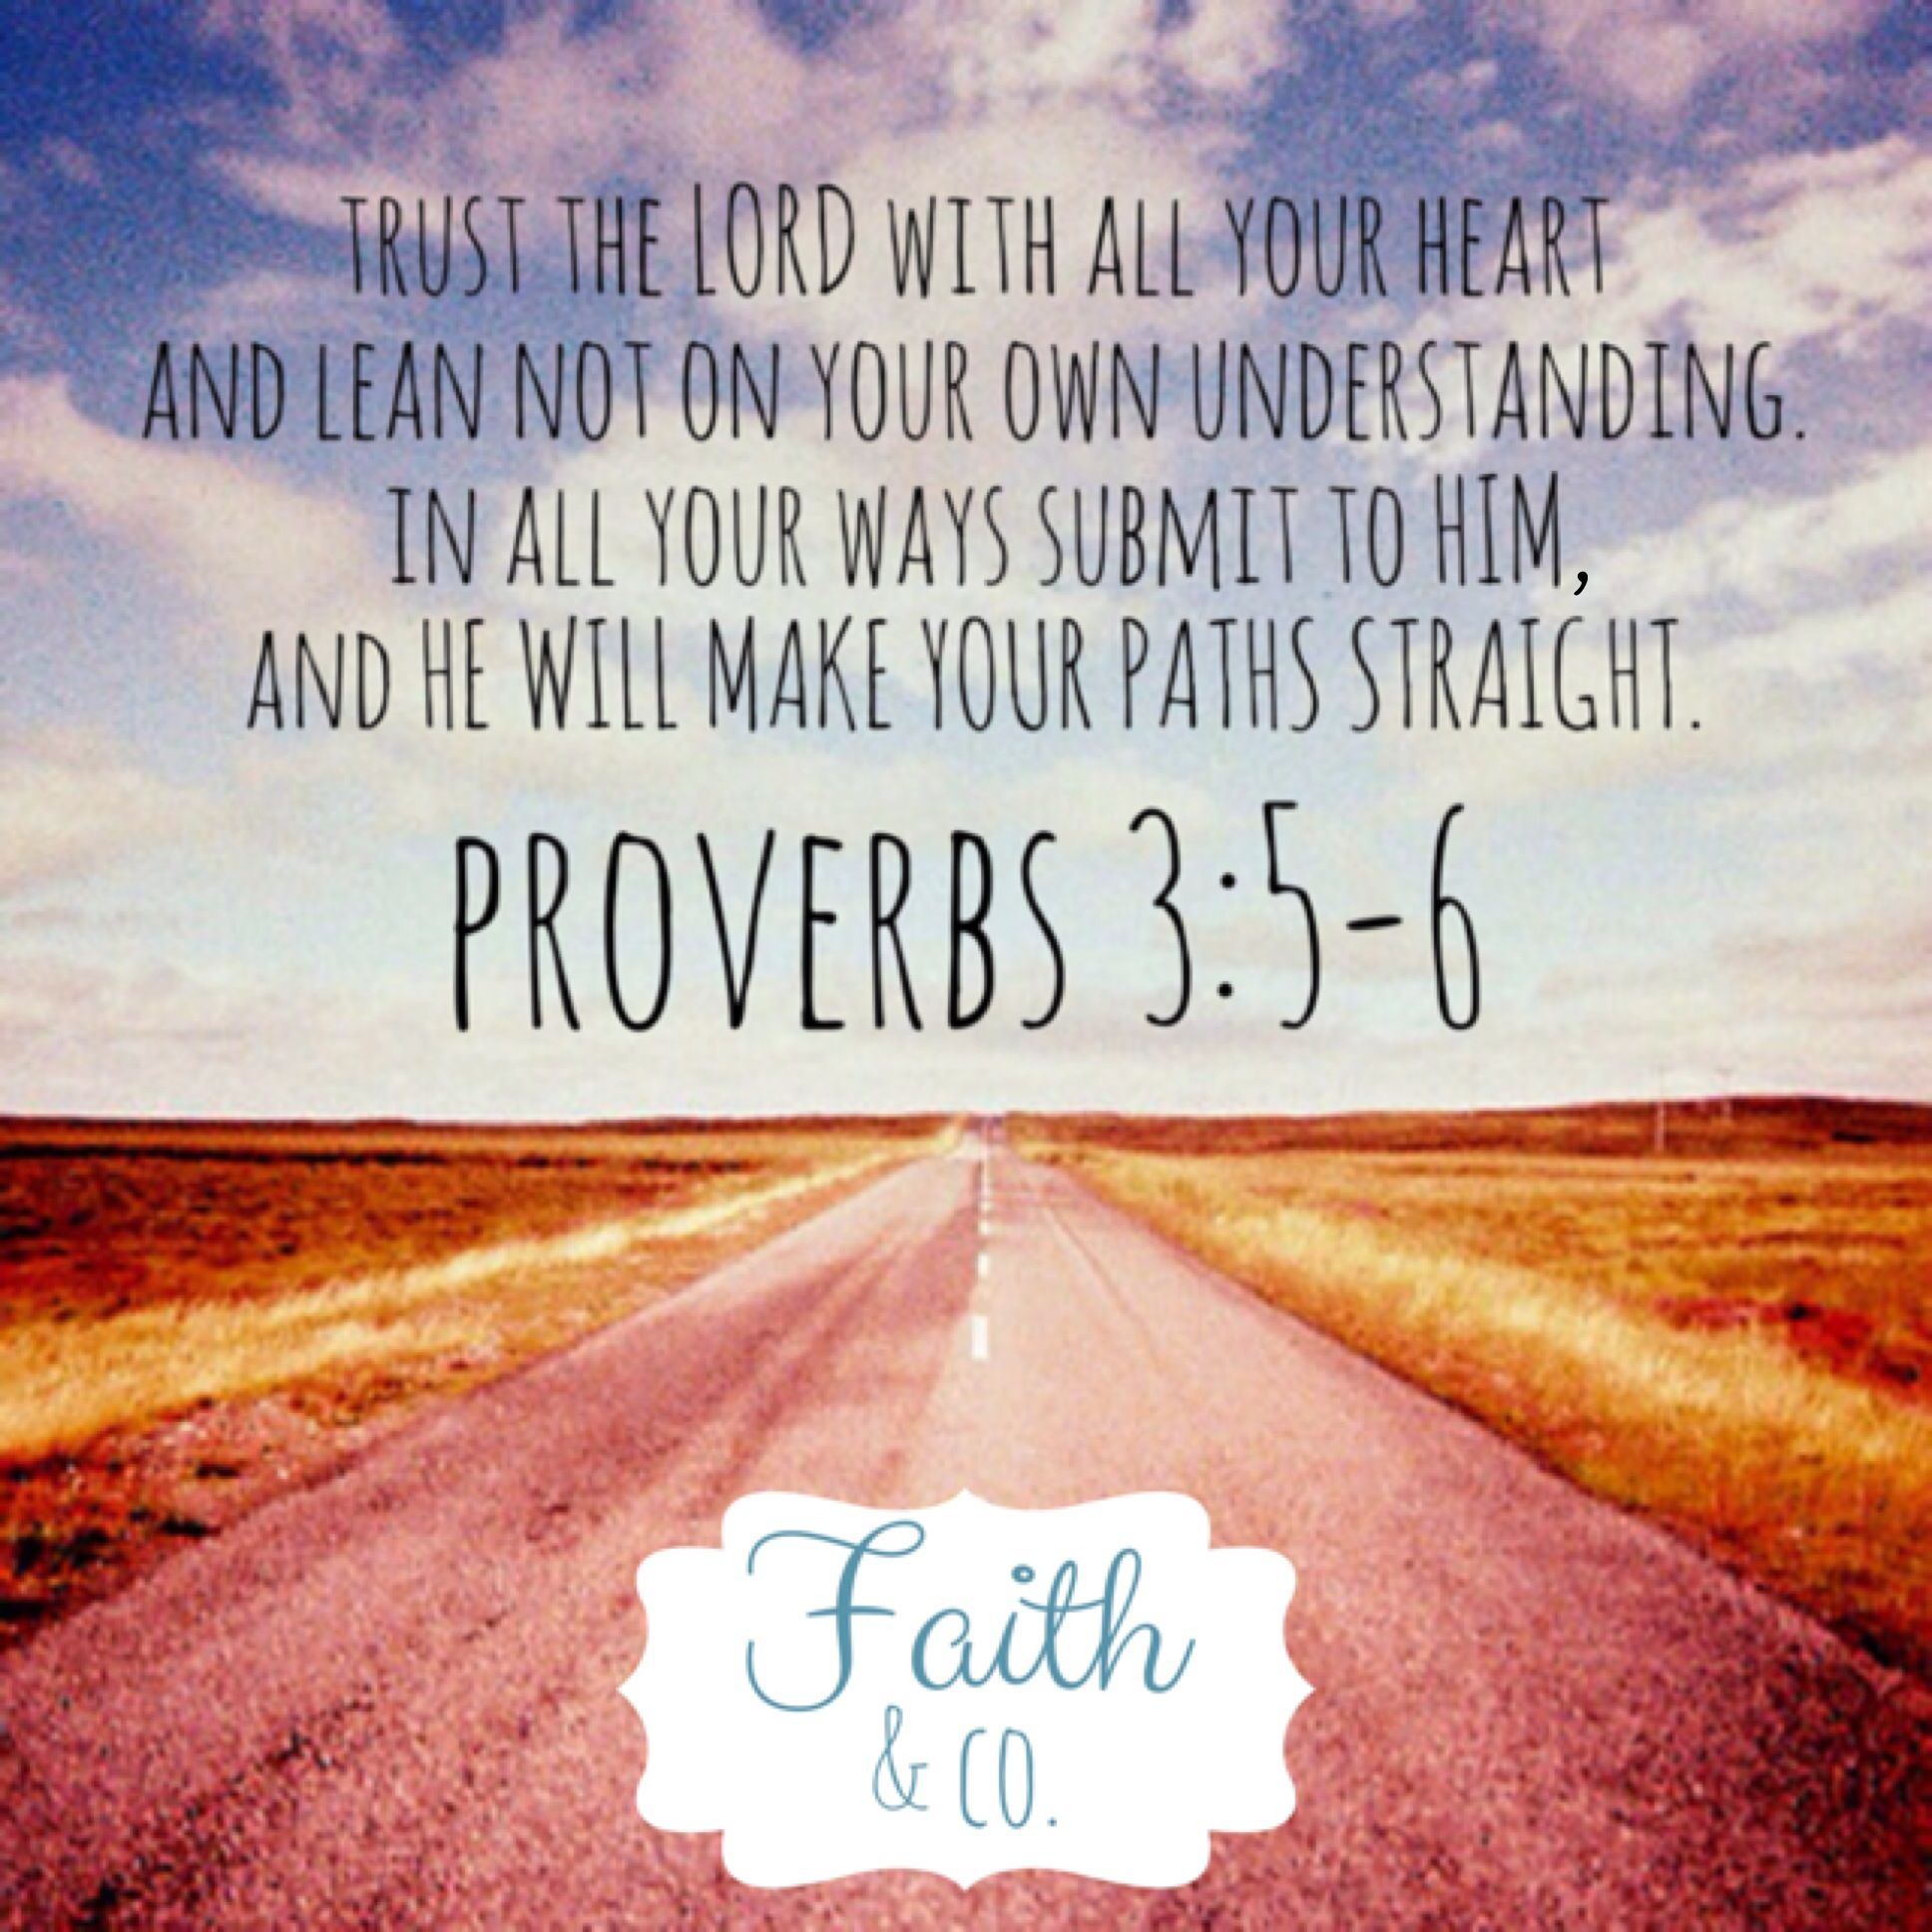 Bible Quotes About Faith Enchanting Images For  Bible Verses About Strength And Faith In Hard Times . Review